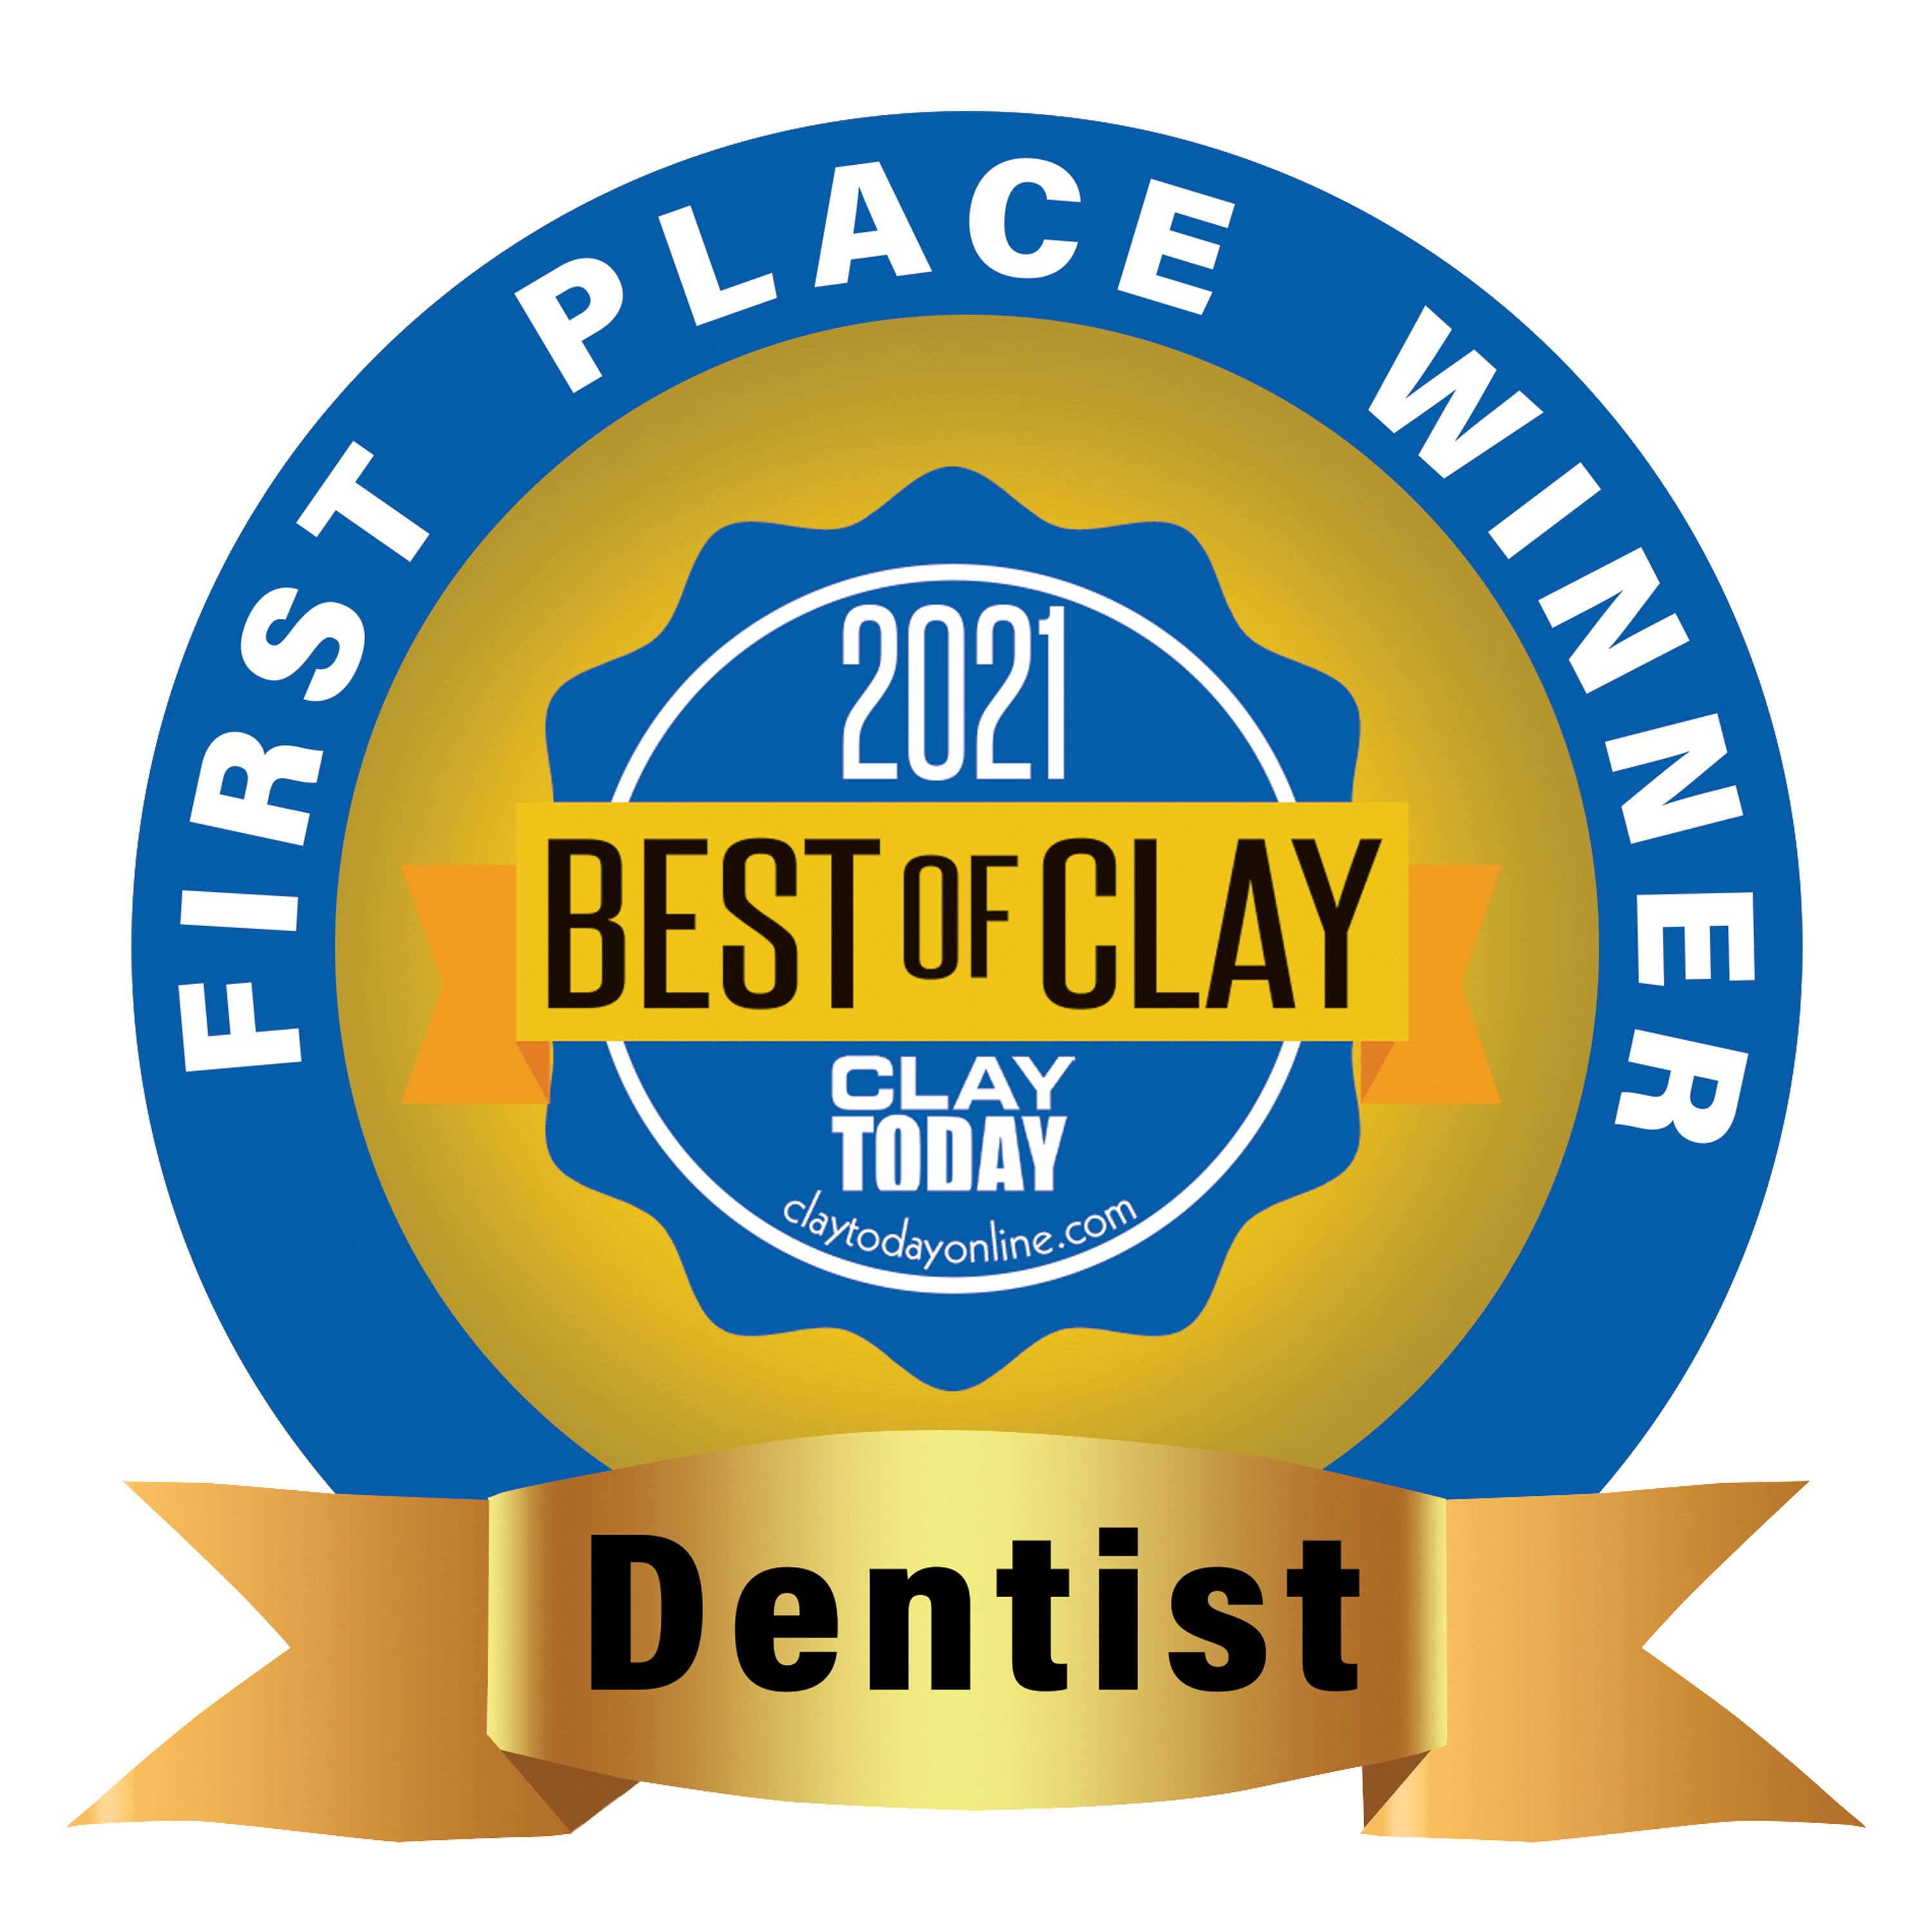 best of clay 2021